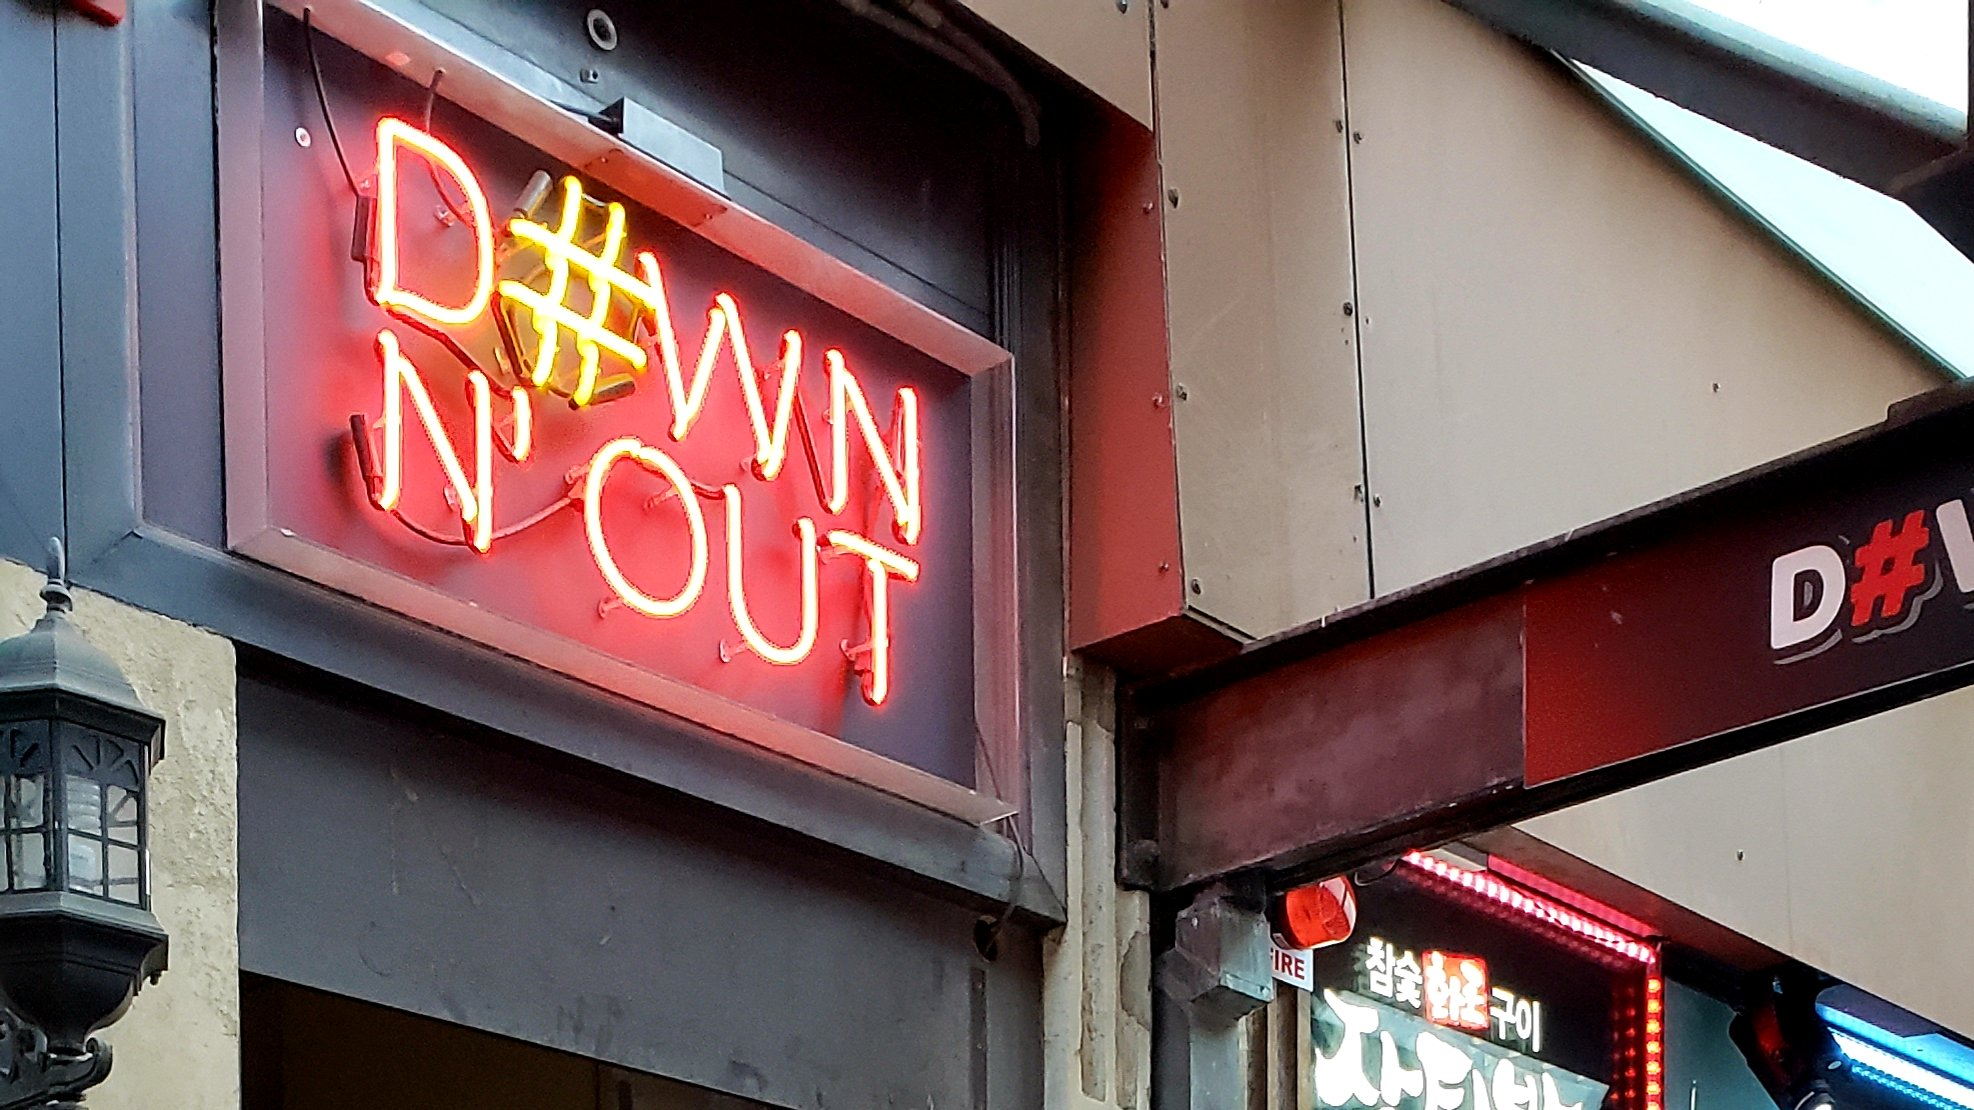 down n out sydney sign